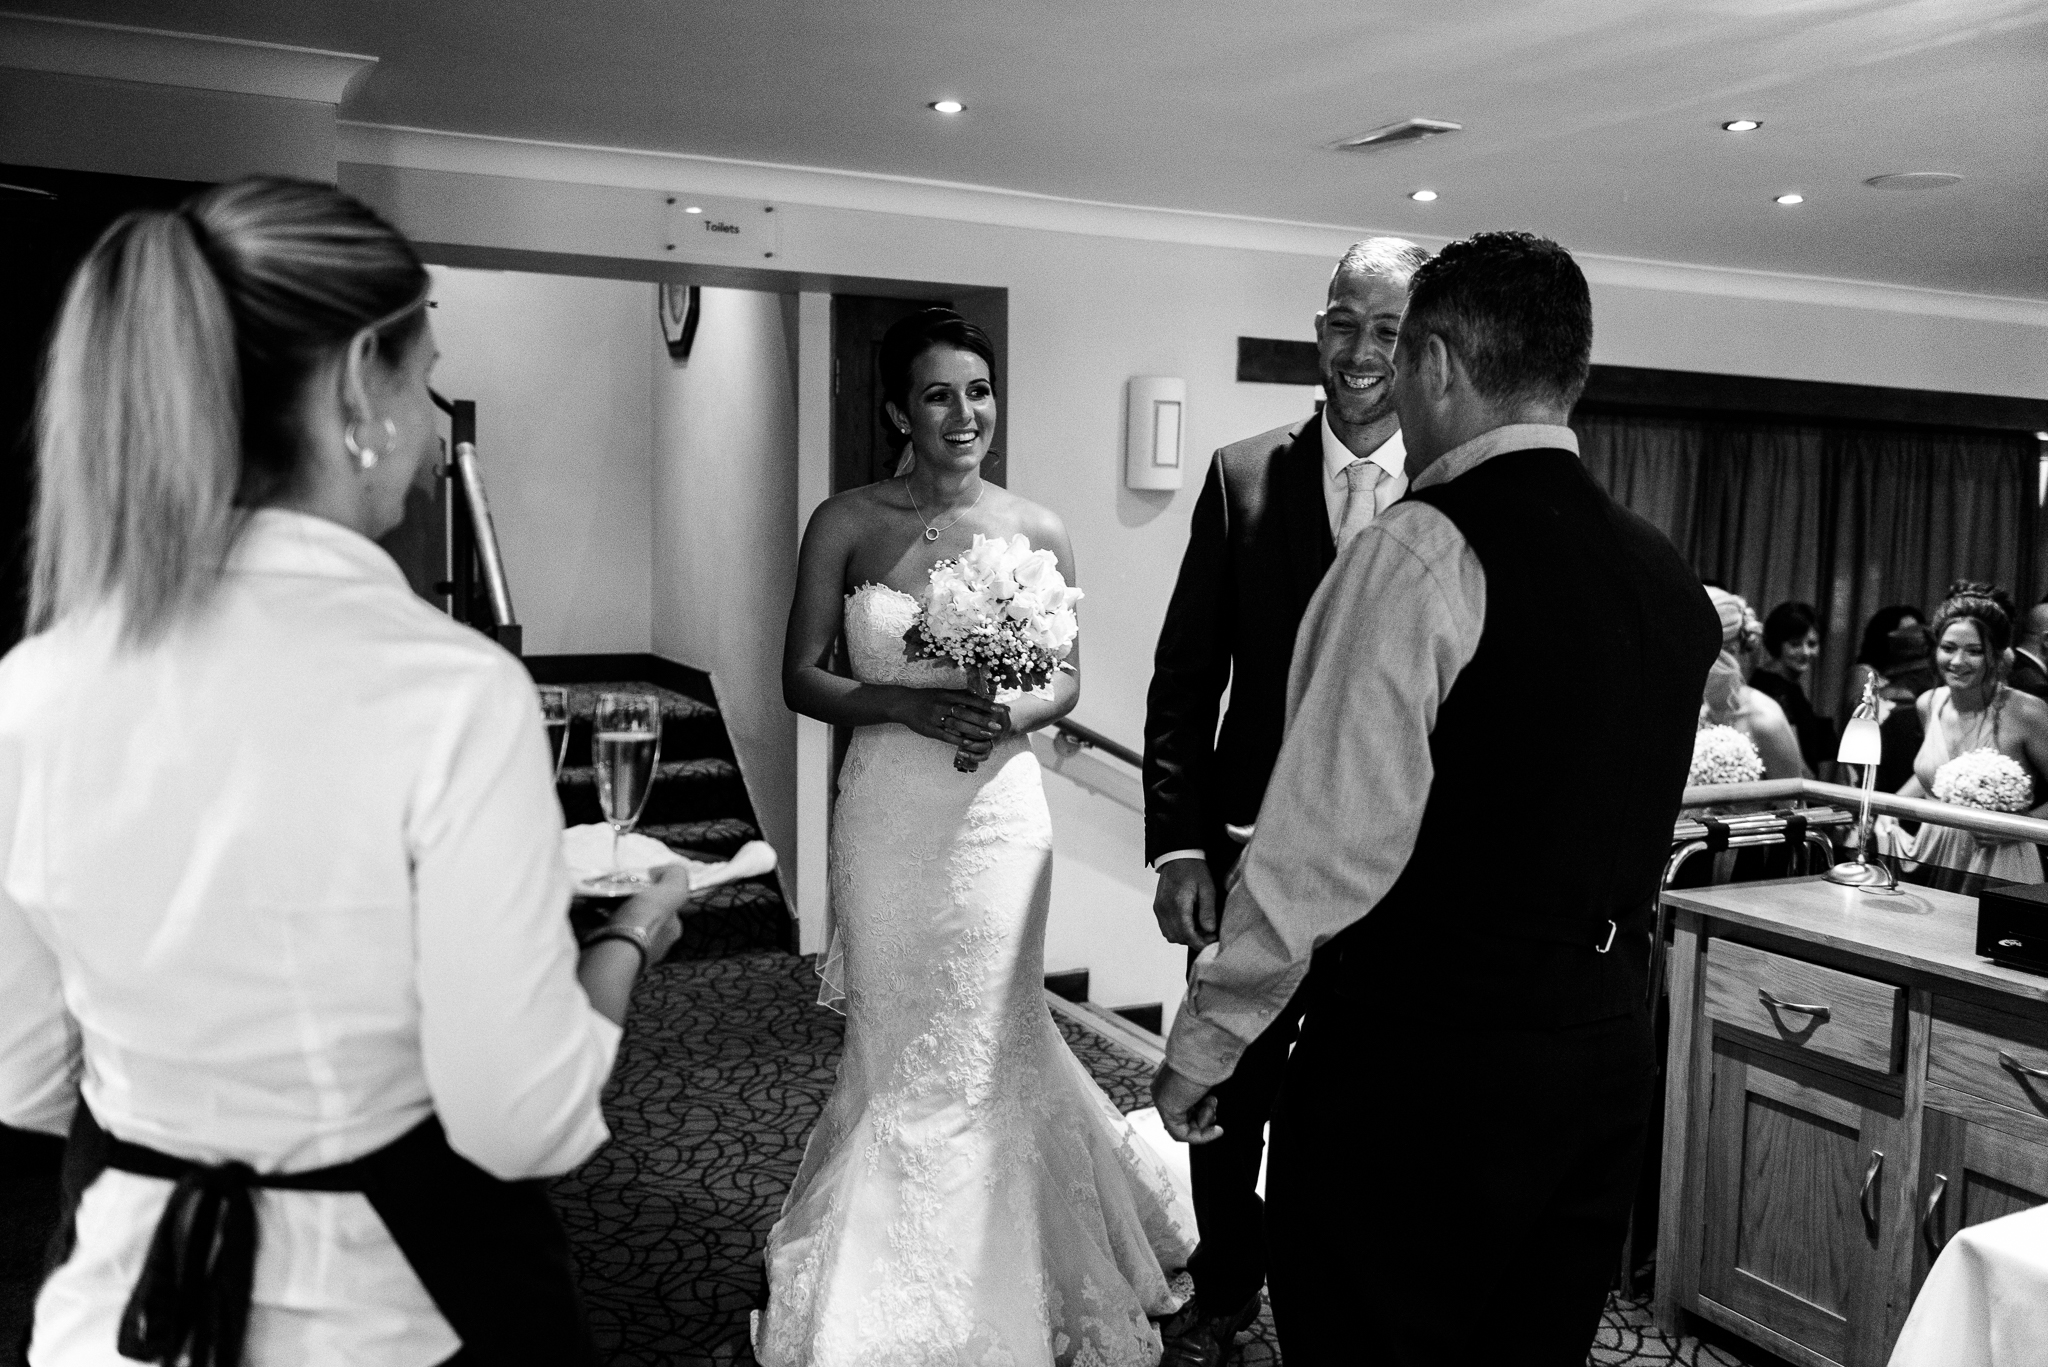 Staffordshire Moorlands Documentary Wedding Photography at The Three Horseshoes, Blackshaw Moor - Jenny Harper-23.jpg